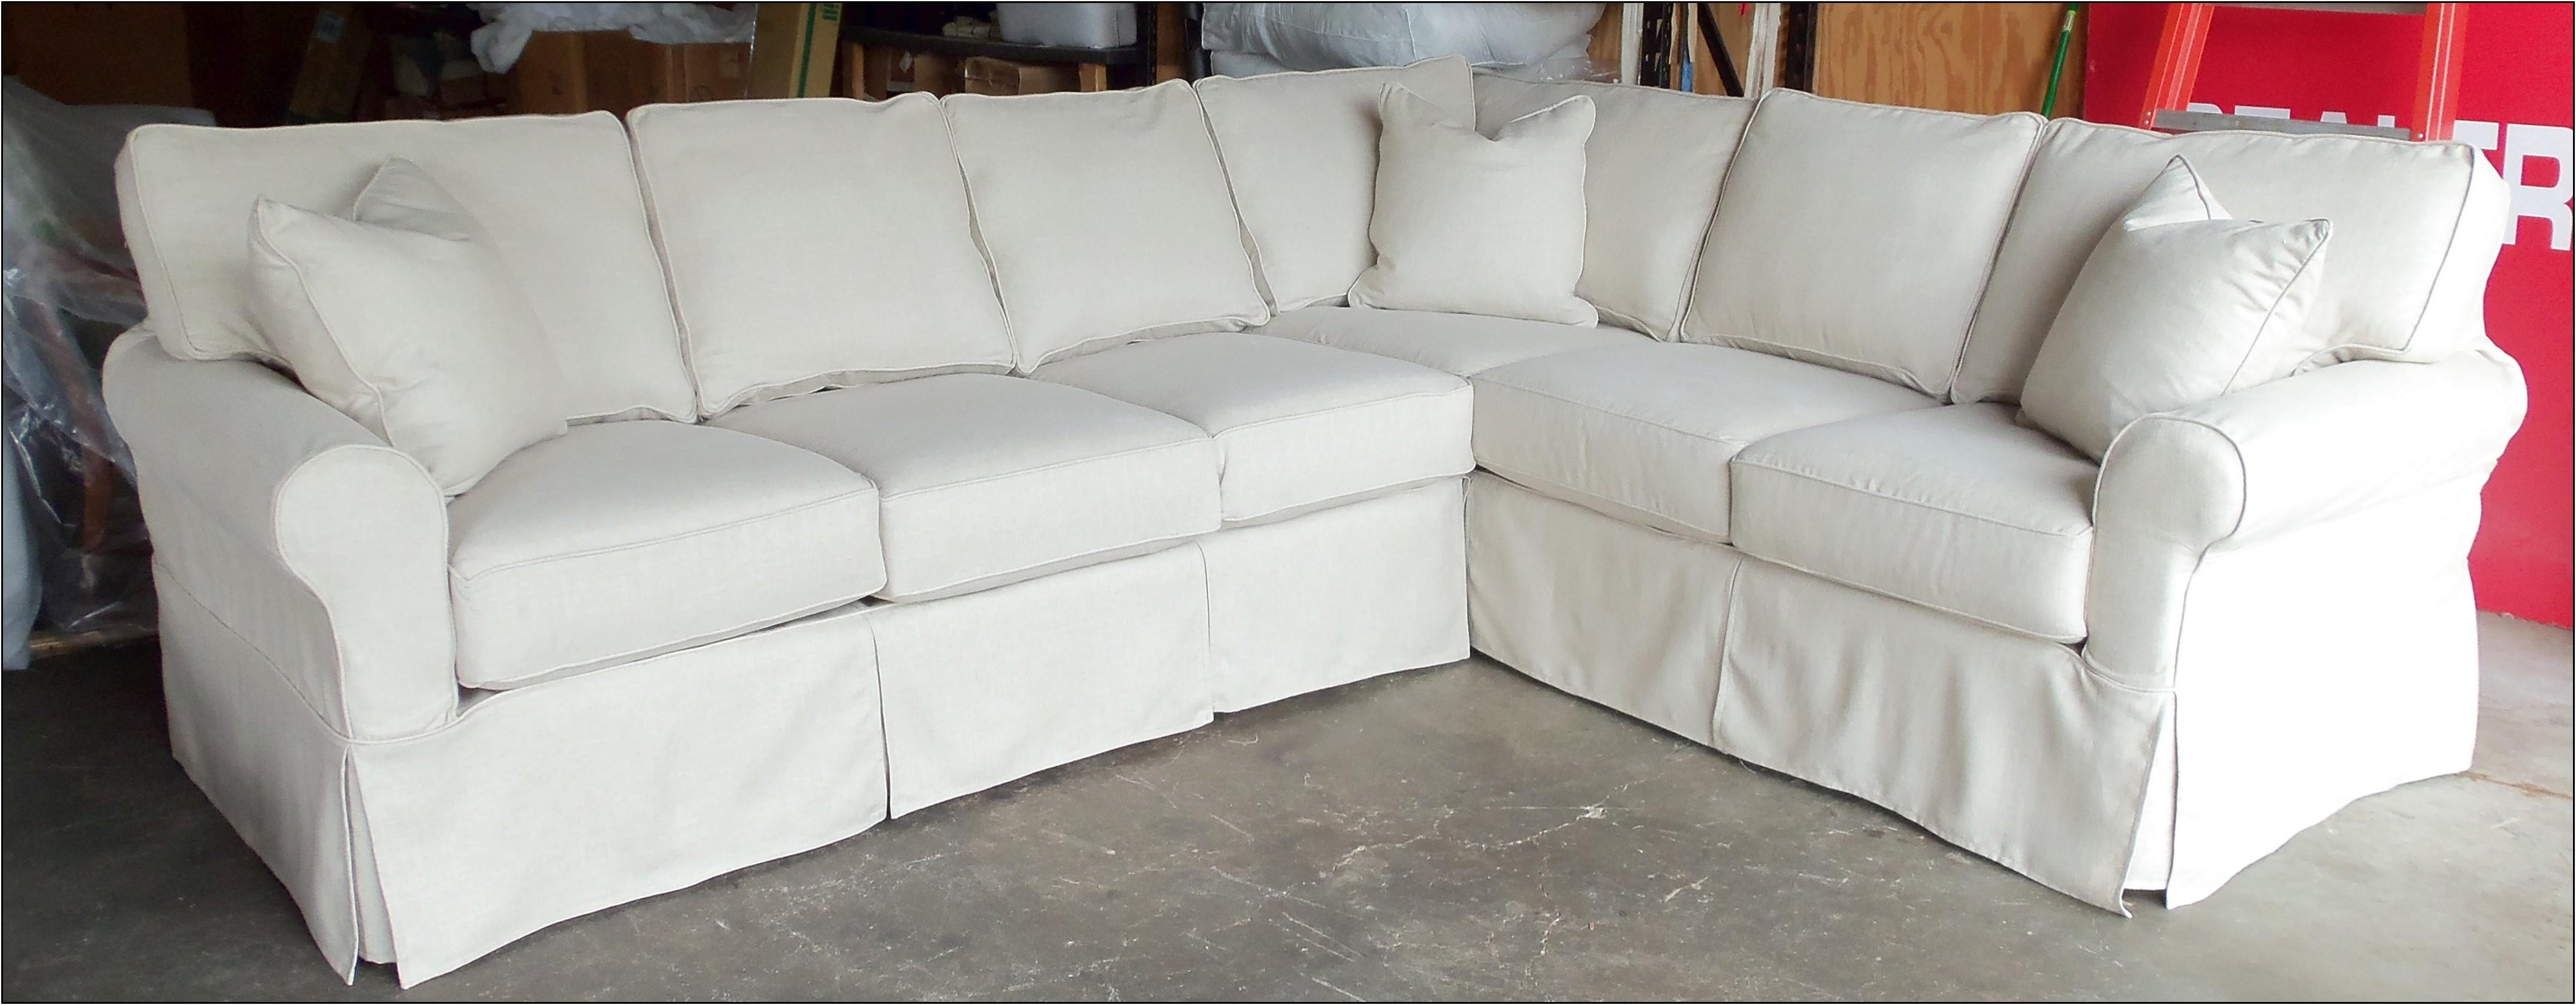 Living Room Chair And Ottoman Covers – Hypnofitmaui Regarding Sleeper Sofa Slipcovers (Image 13 of 20)